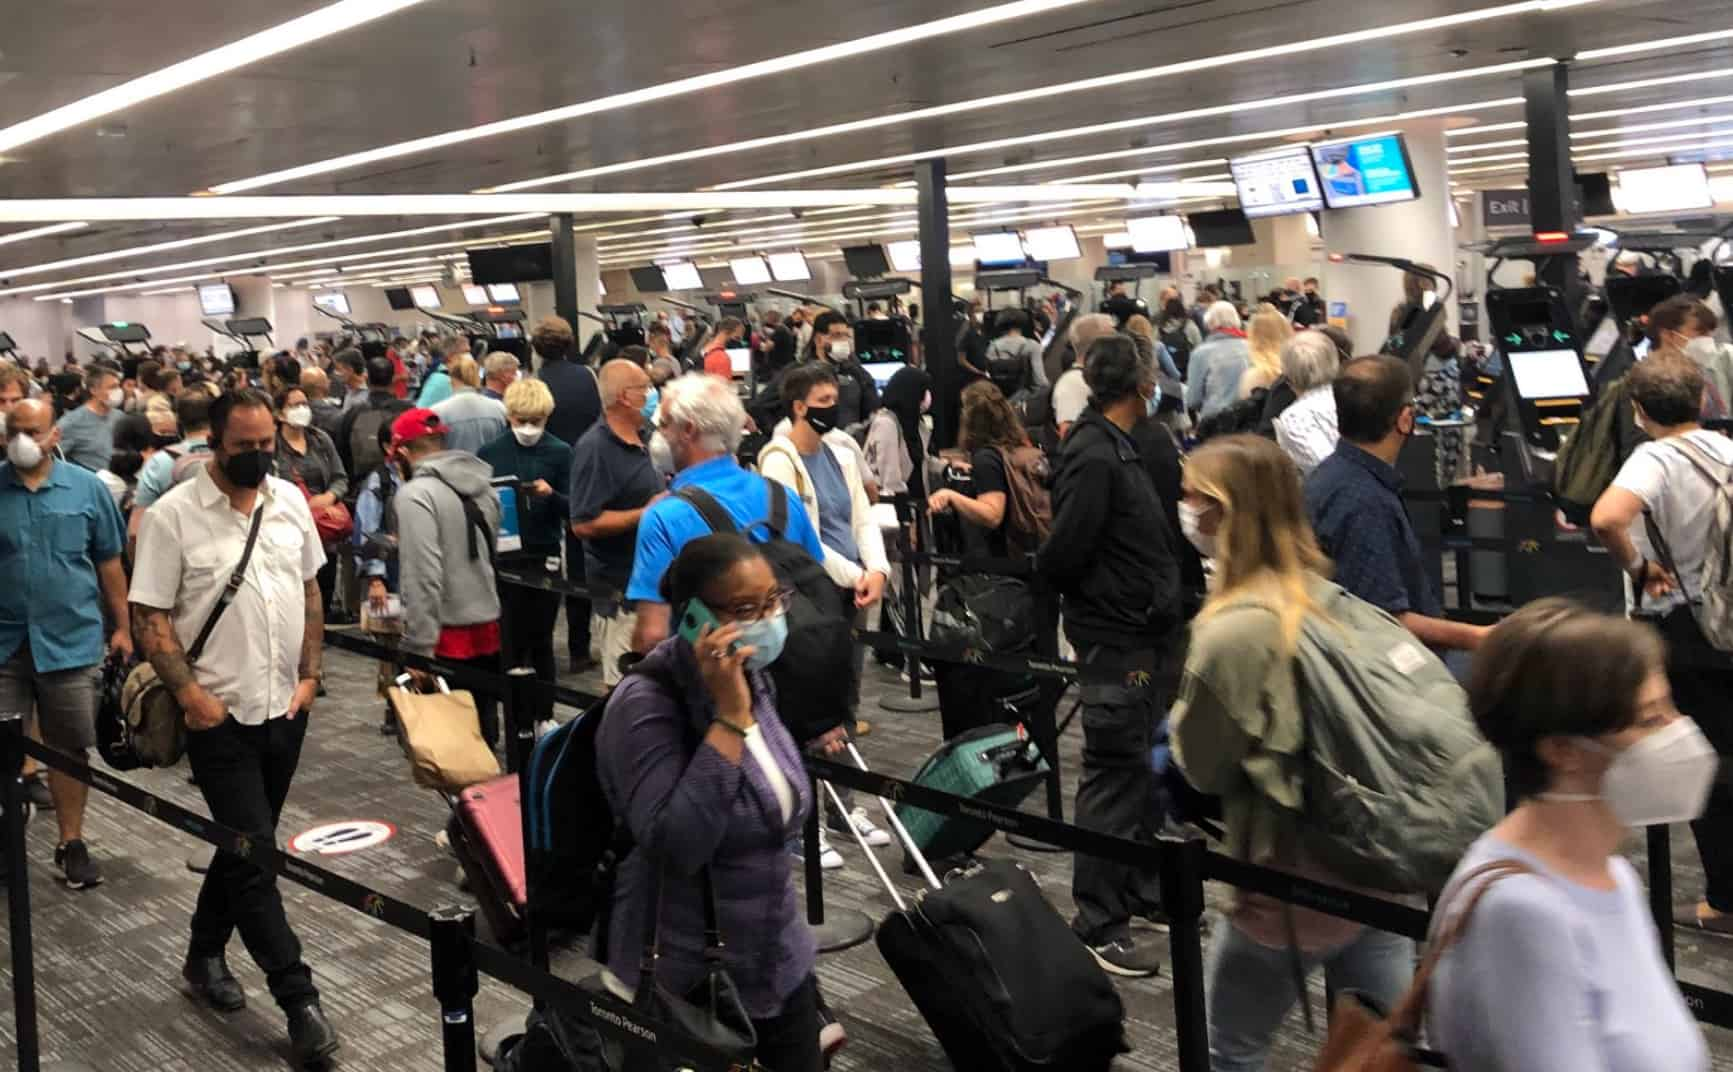 pearson_airport_mississauga_crowds